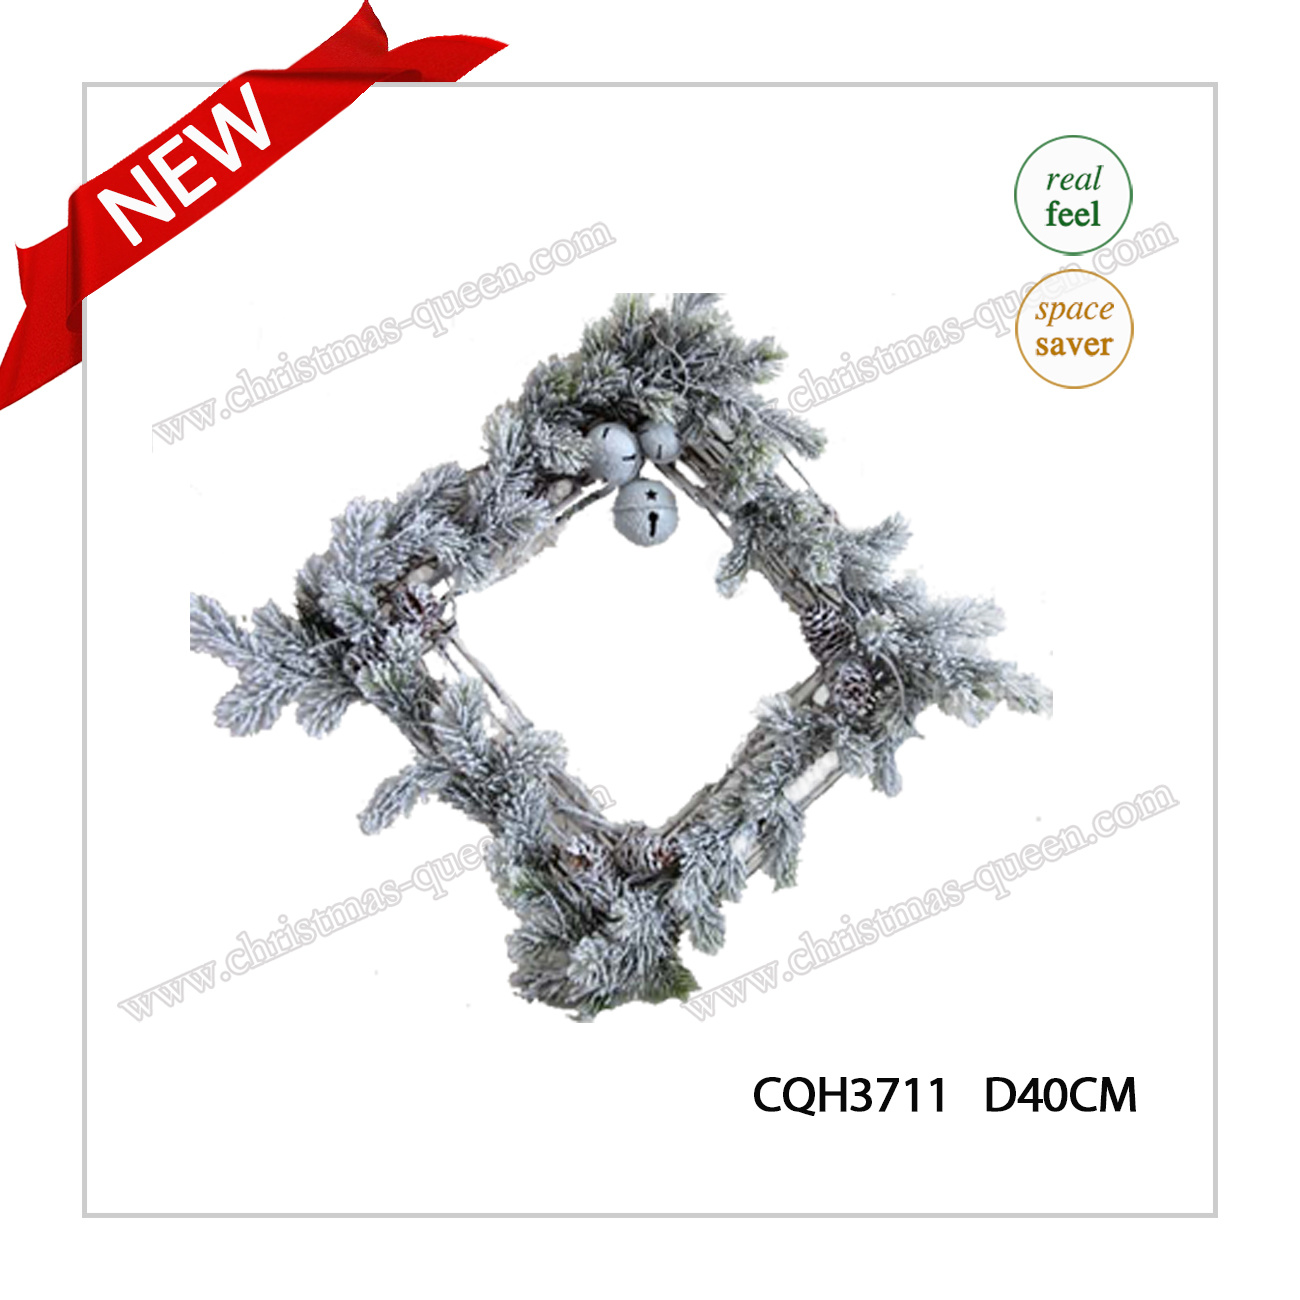 2017 New Arrival D40cm PE Party Supplies Glow Innovative Wreath